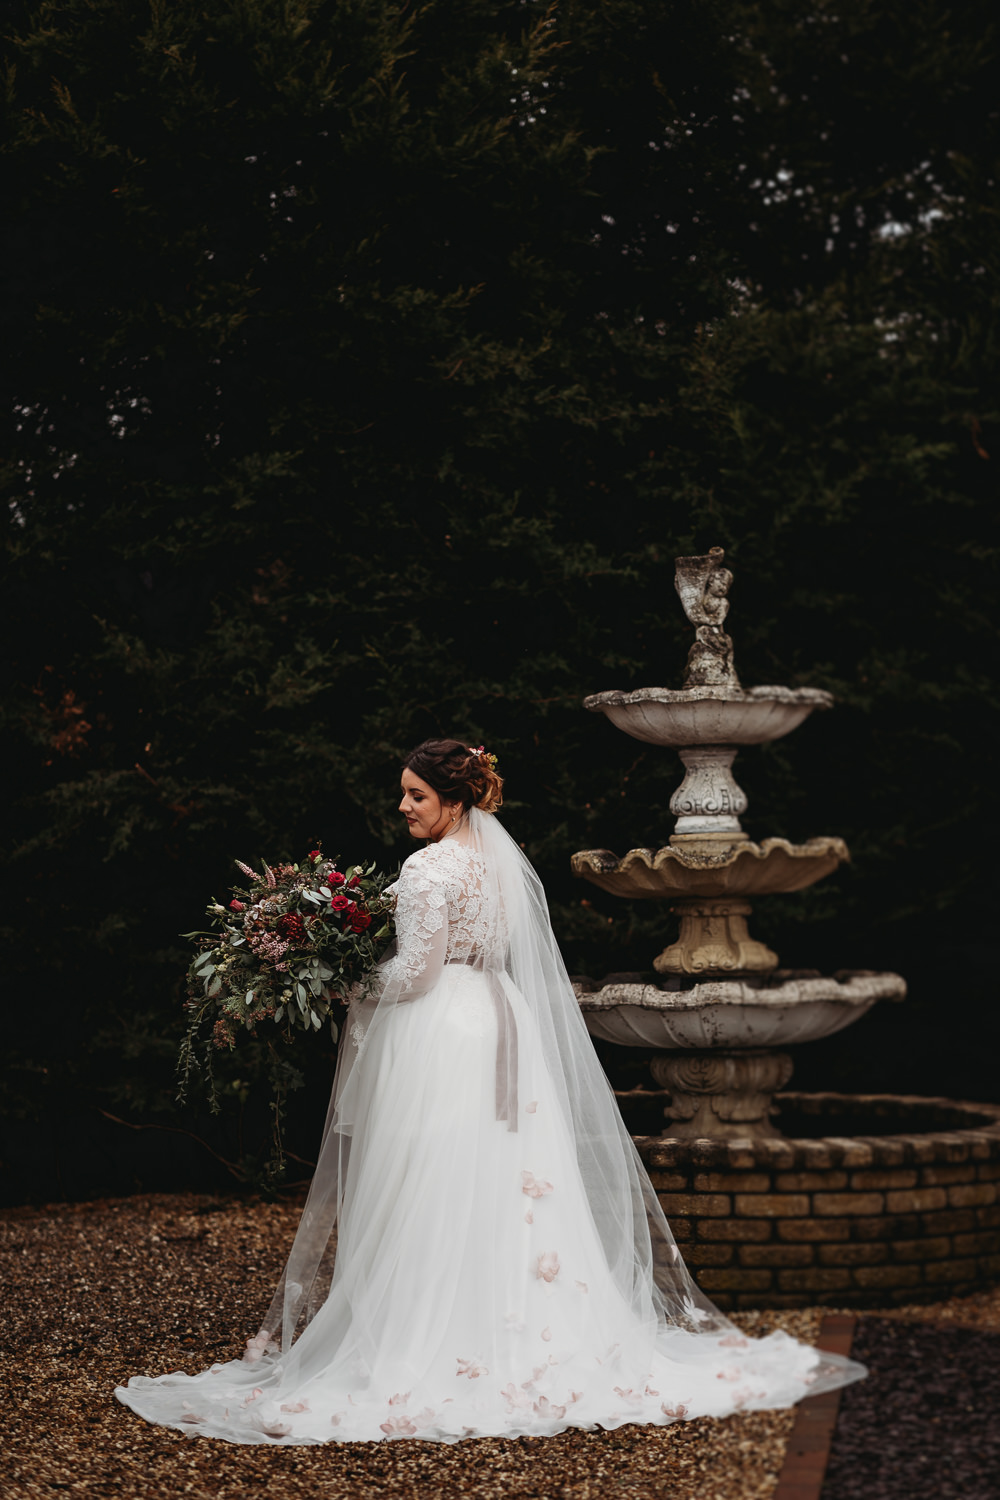 Dress Gown Bride Bridal Lace Top Long Sleeves Train Veil Christmas Marquee Wedding Thyme Lane Photography